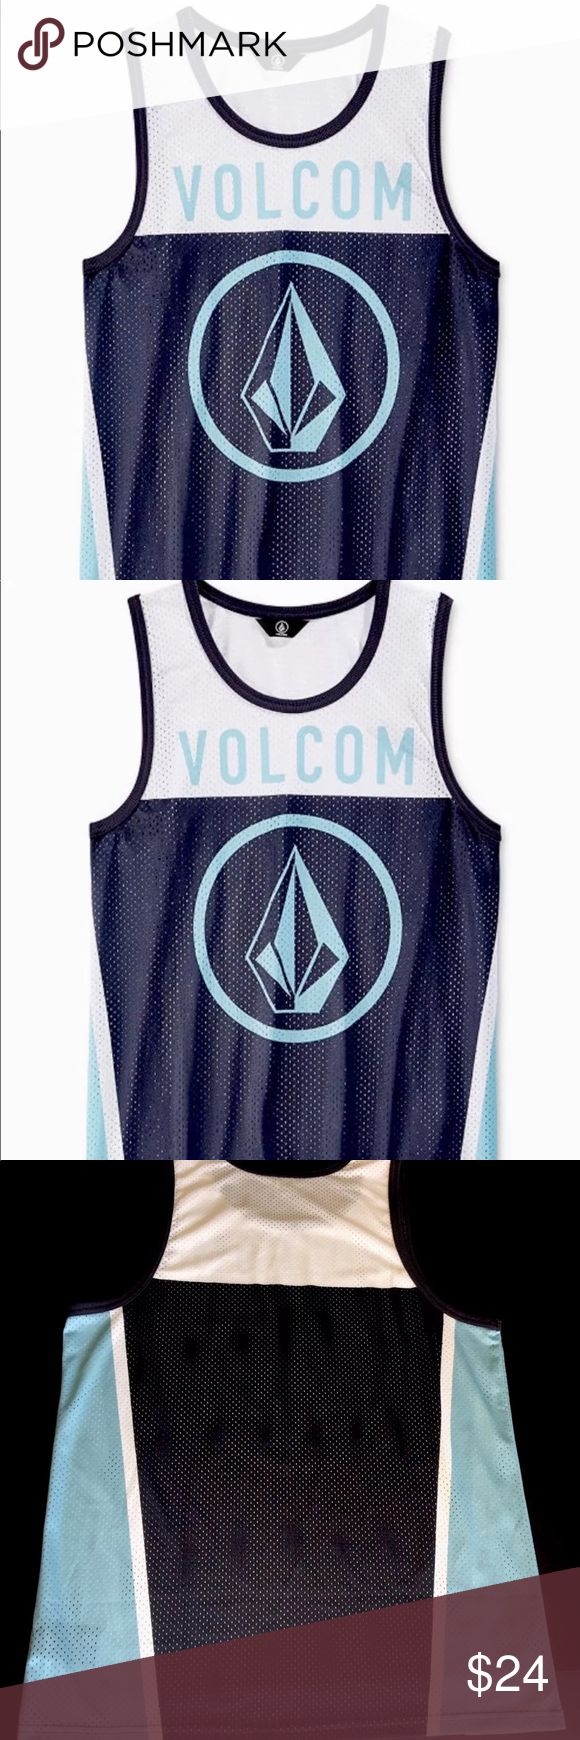 "MEN'S VOLCOM ""STONE STAR""  SLEVEELESS MESH TANK BRAND NEW MEN'S VOLCOM ""STONE STAR""  SLEVEELESS MESH TANK.  THIS IS A BRAND NEW ""WITHOUT TAG""  100% AUTHENTIC VOLCOM MERCHANDISE.  STYLE: A02316D3  COLOR: MULTIPLE OF BLUE/WHITE  SIZE: REGULAR MEN'S LARGE.  MSRP: $40.00 + TAX Volcom Shirts Tank Tops"